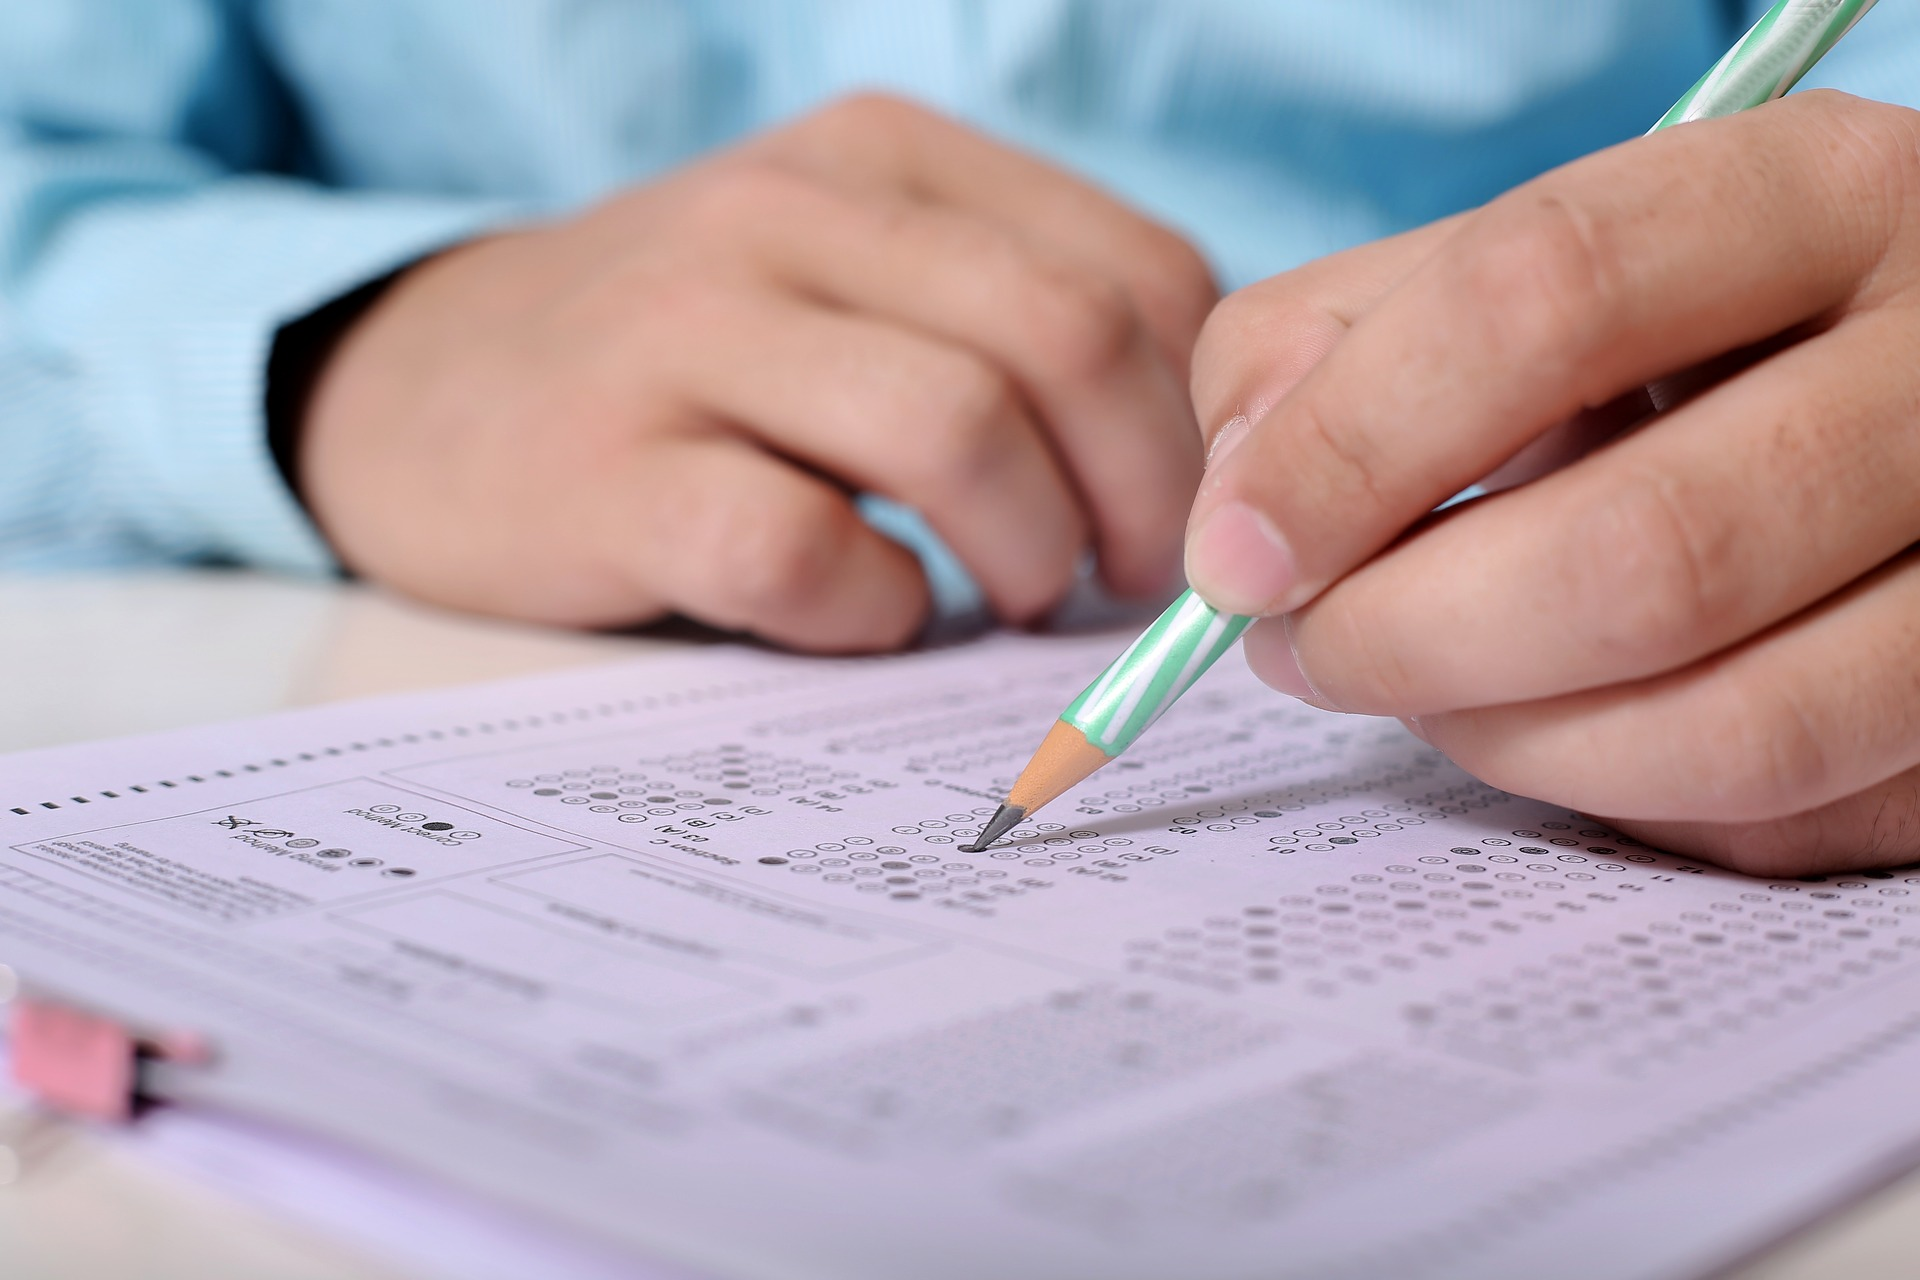 a student taking a multiple choice test